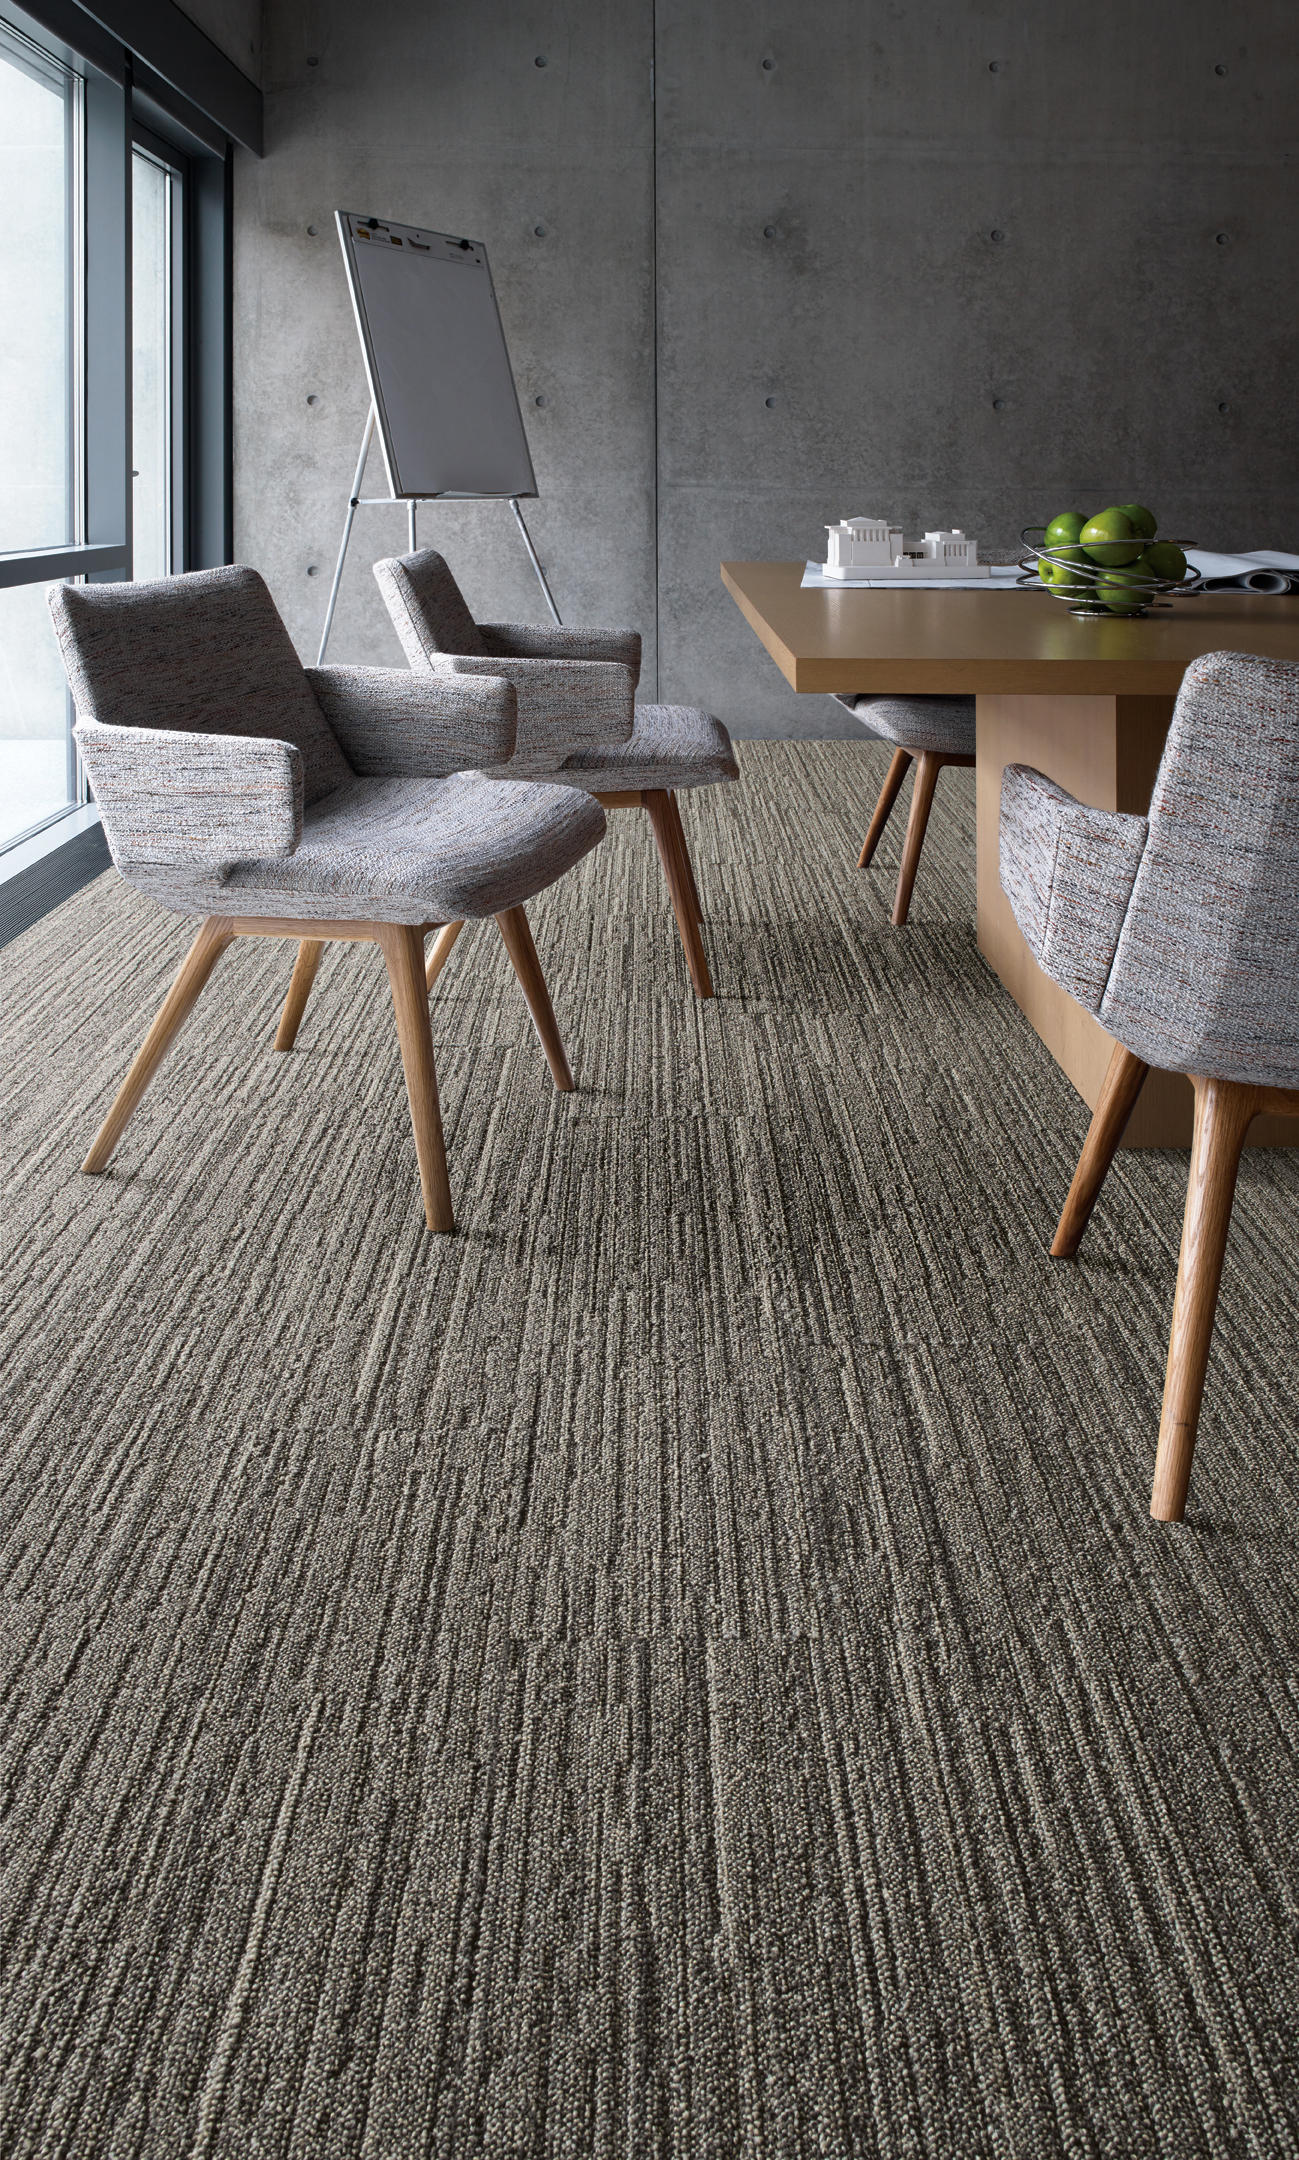 World Woven 880 Linen Loom Carpet Tiles From Interface